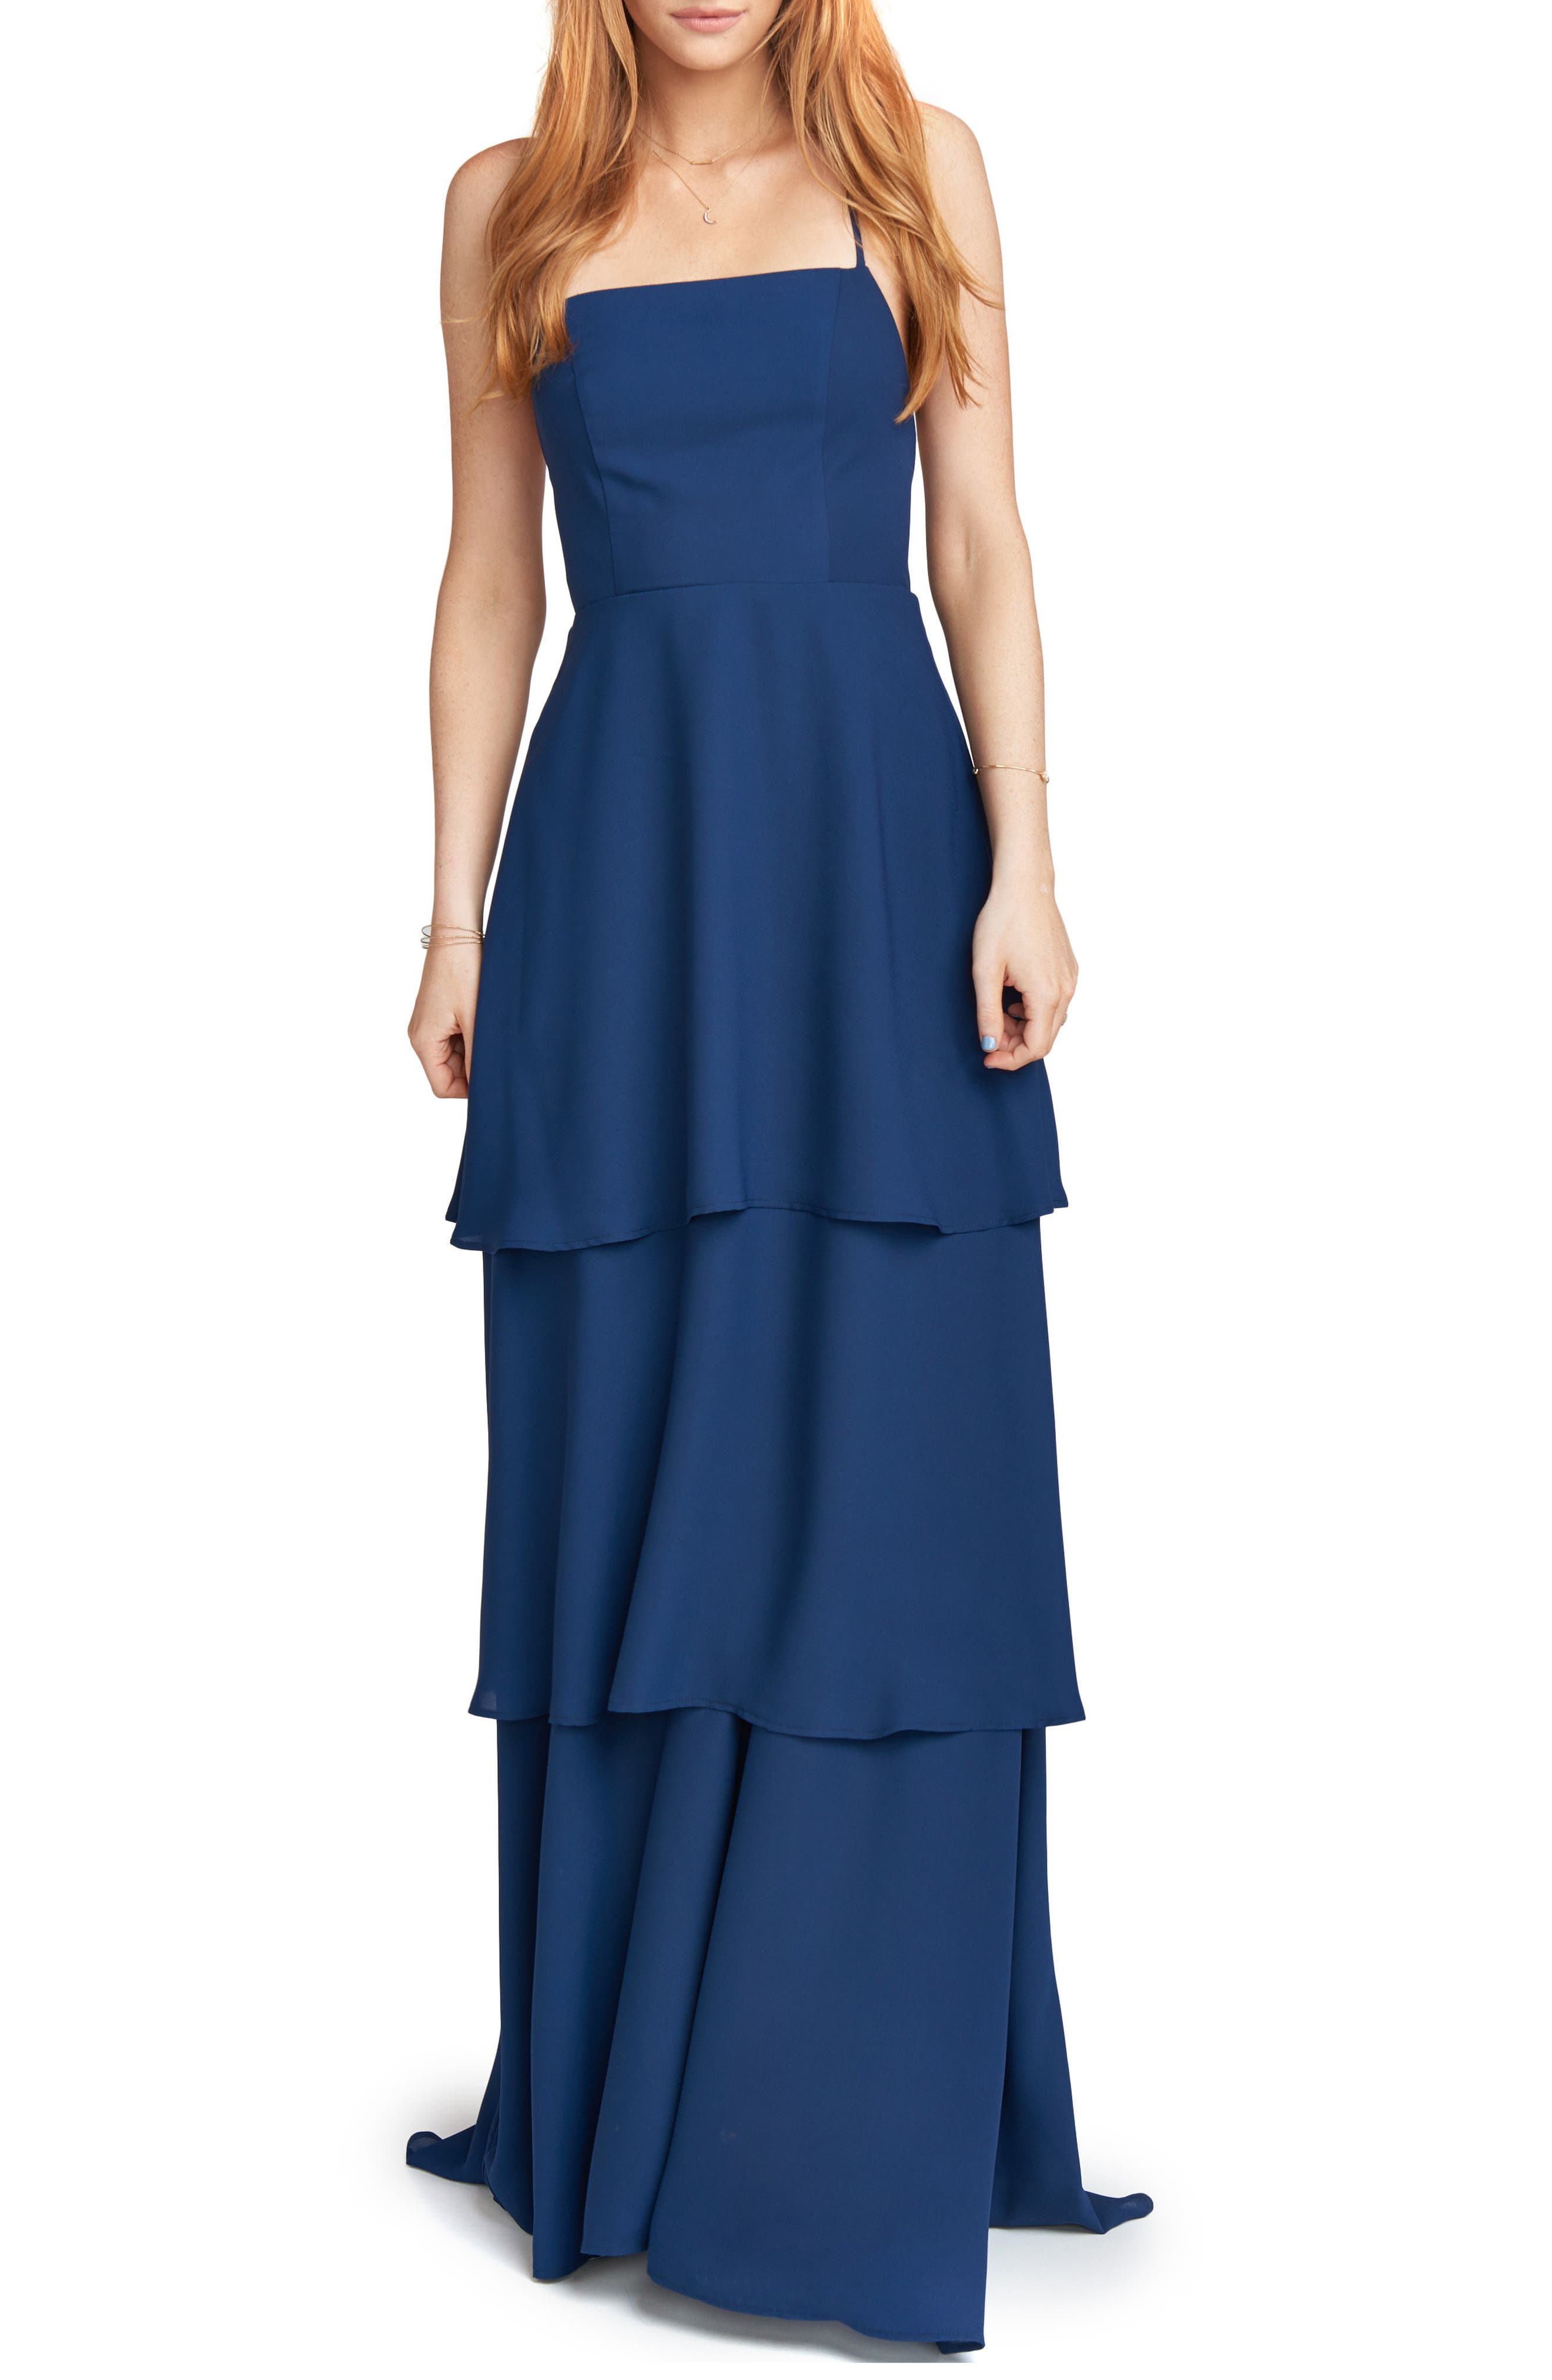 Calypso Strappy Tiered Maxi Dress,                         Main,                         color, Rich Navy